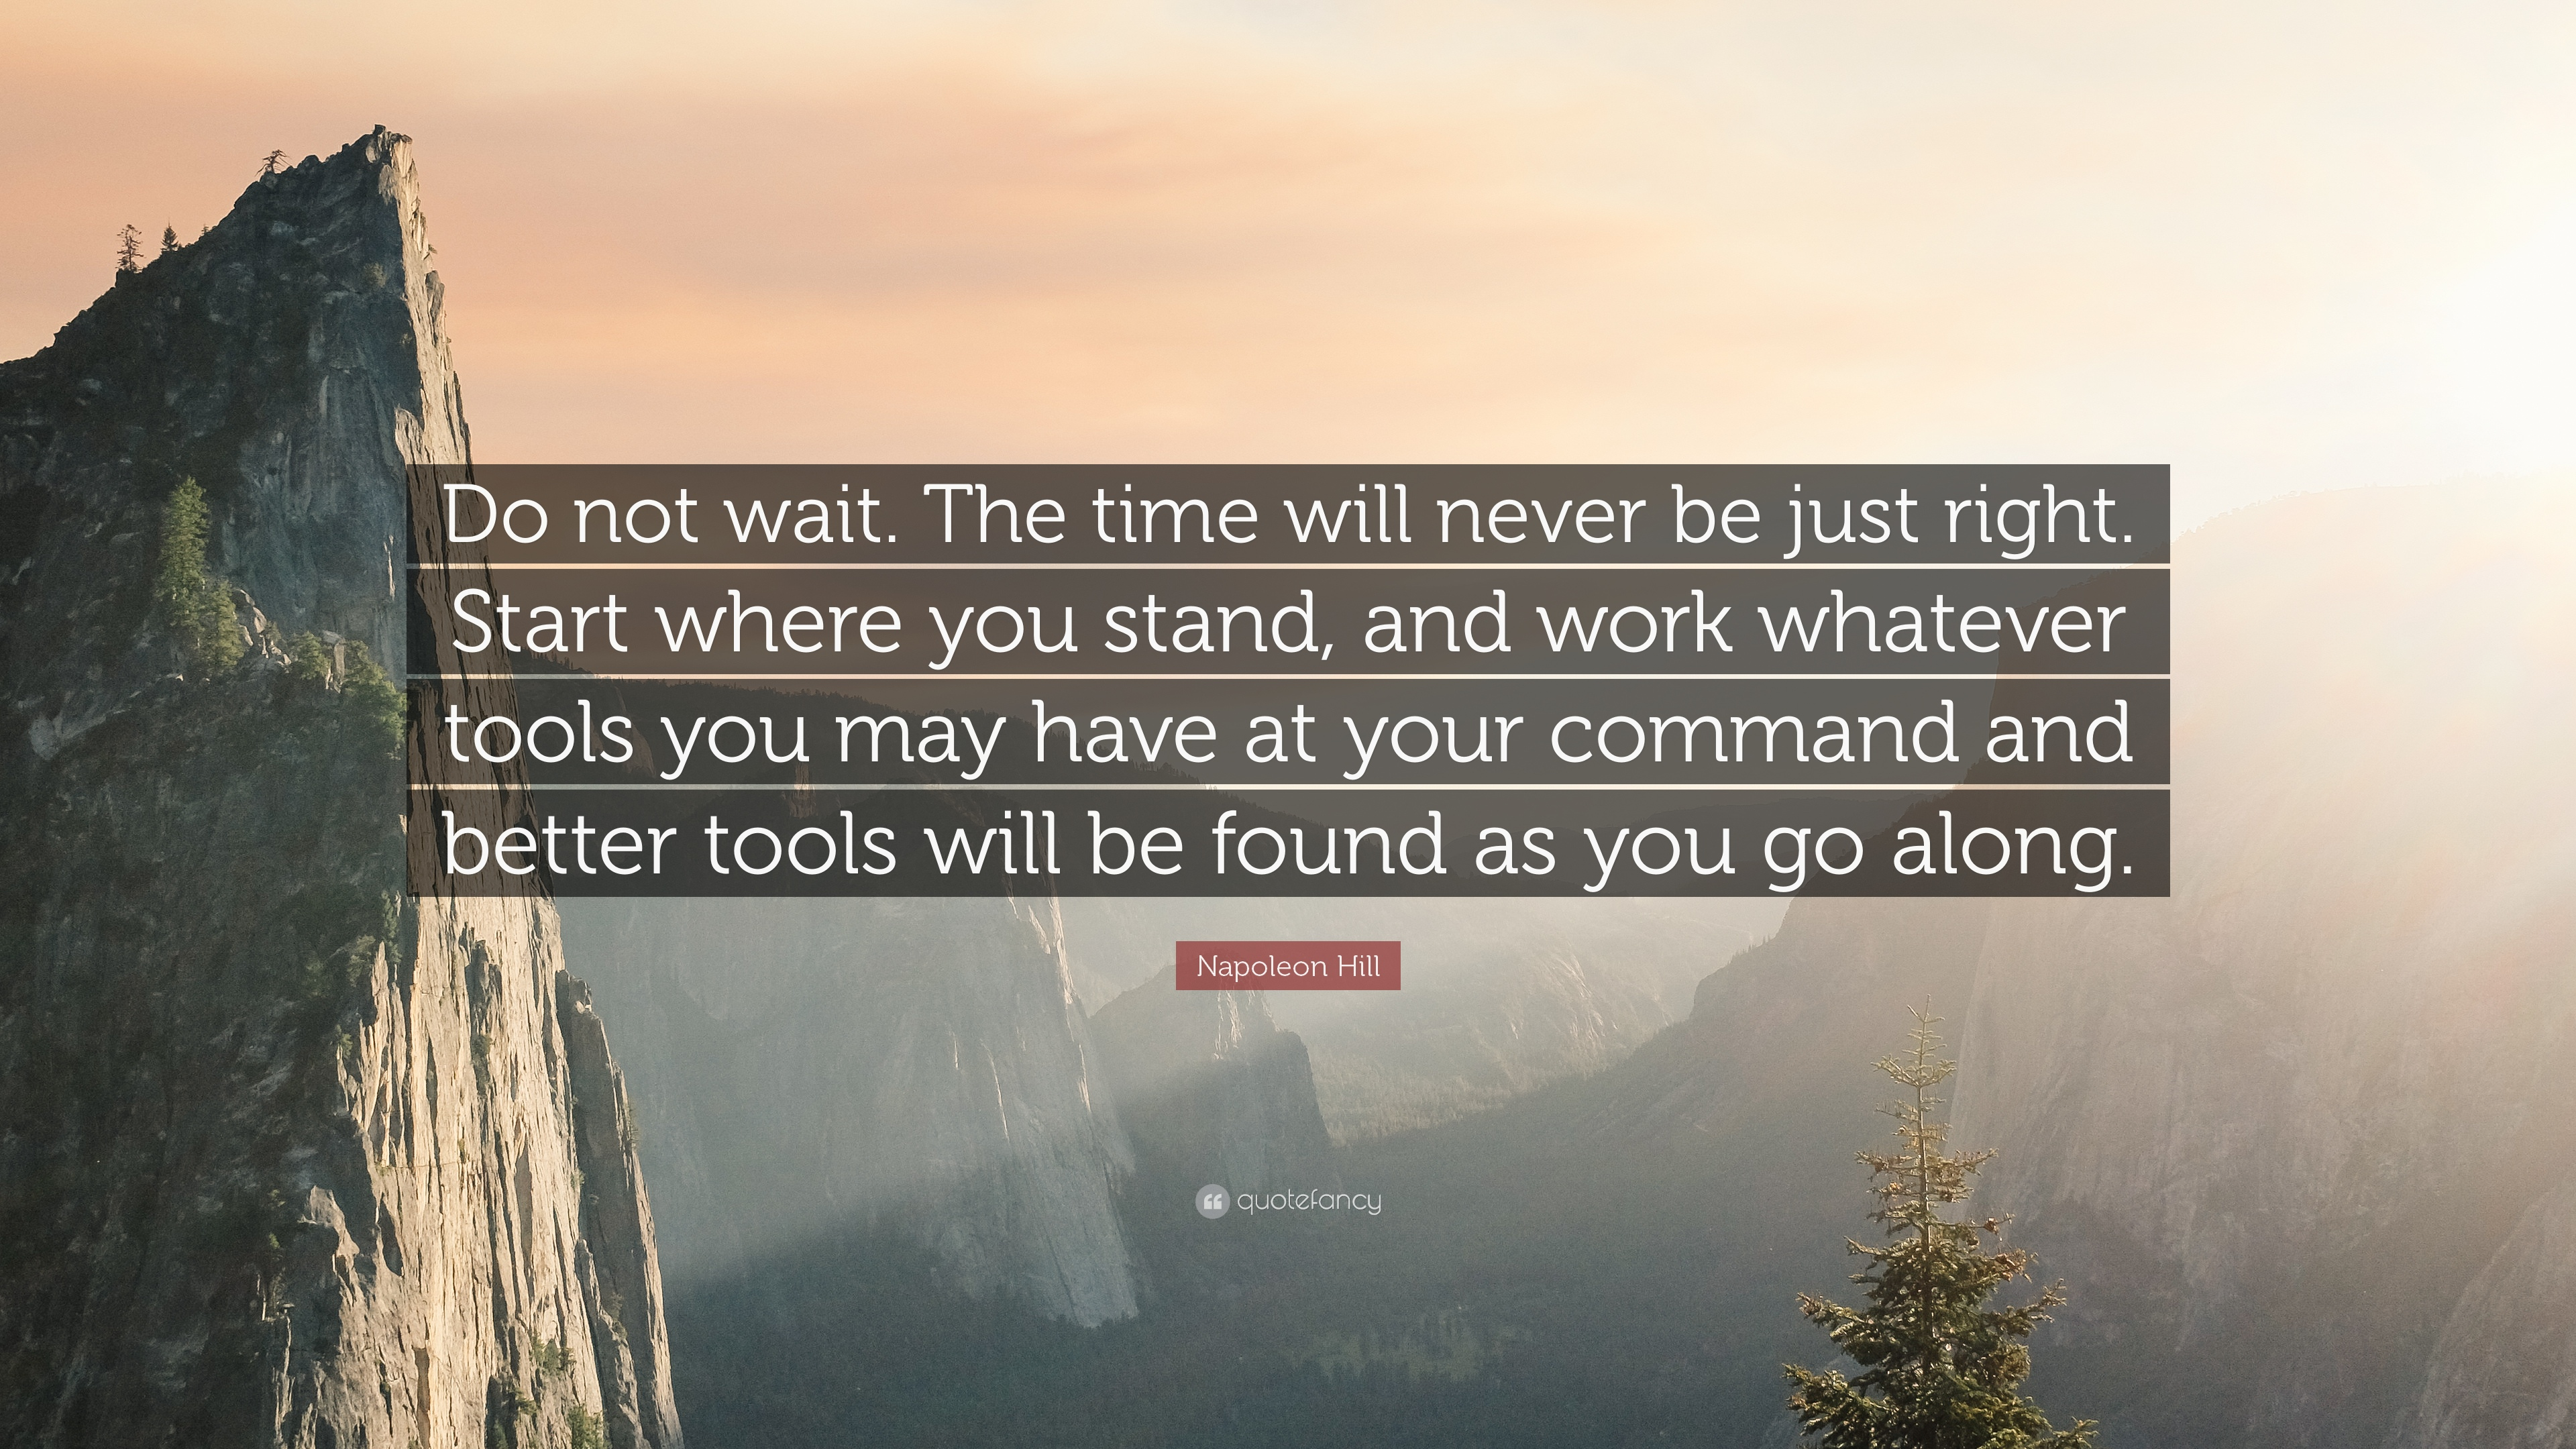 Just Wait For The Right Time Quotes Pw Navi